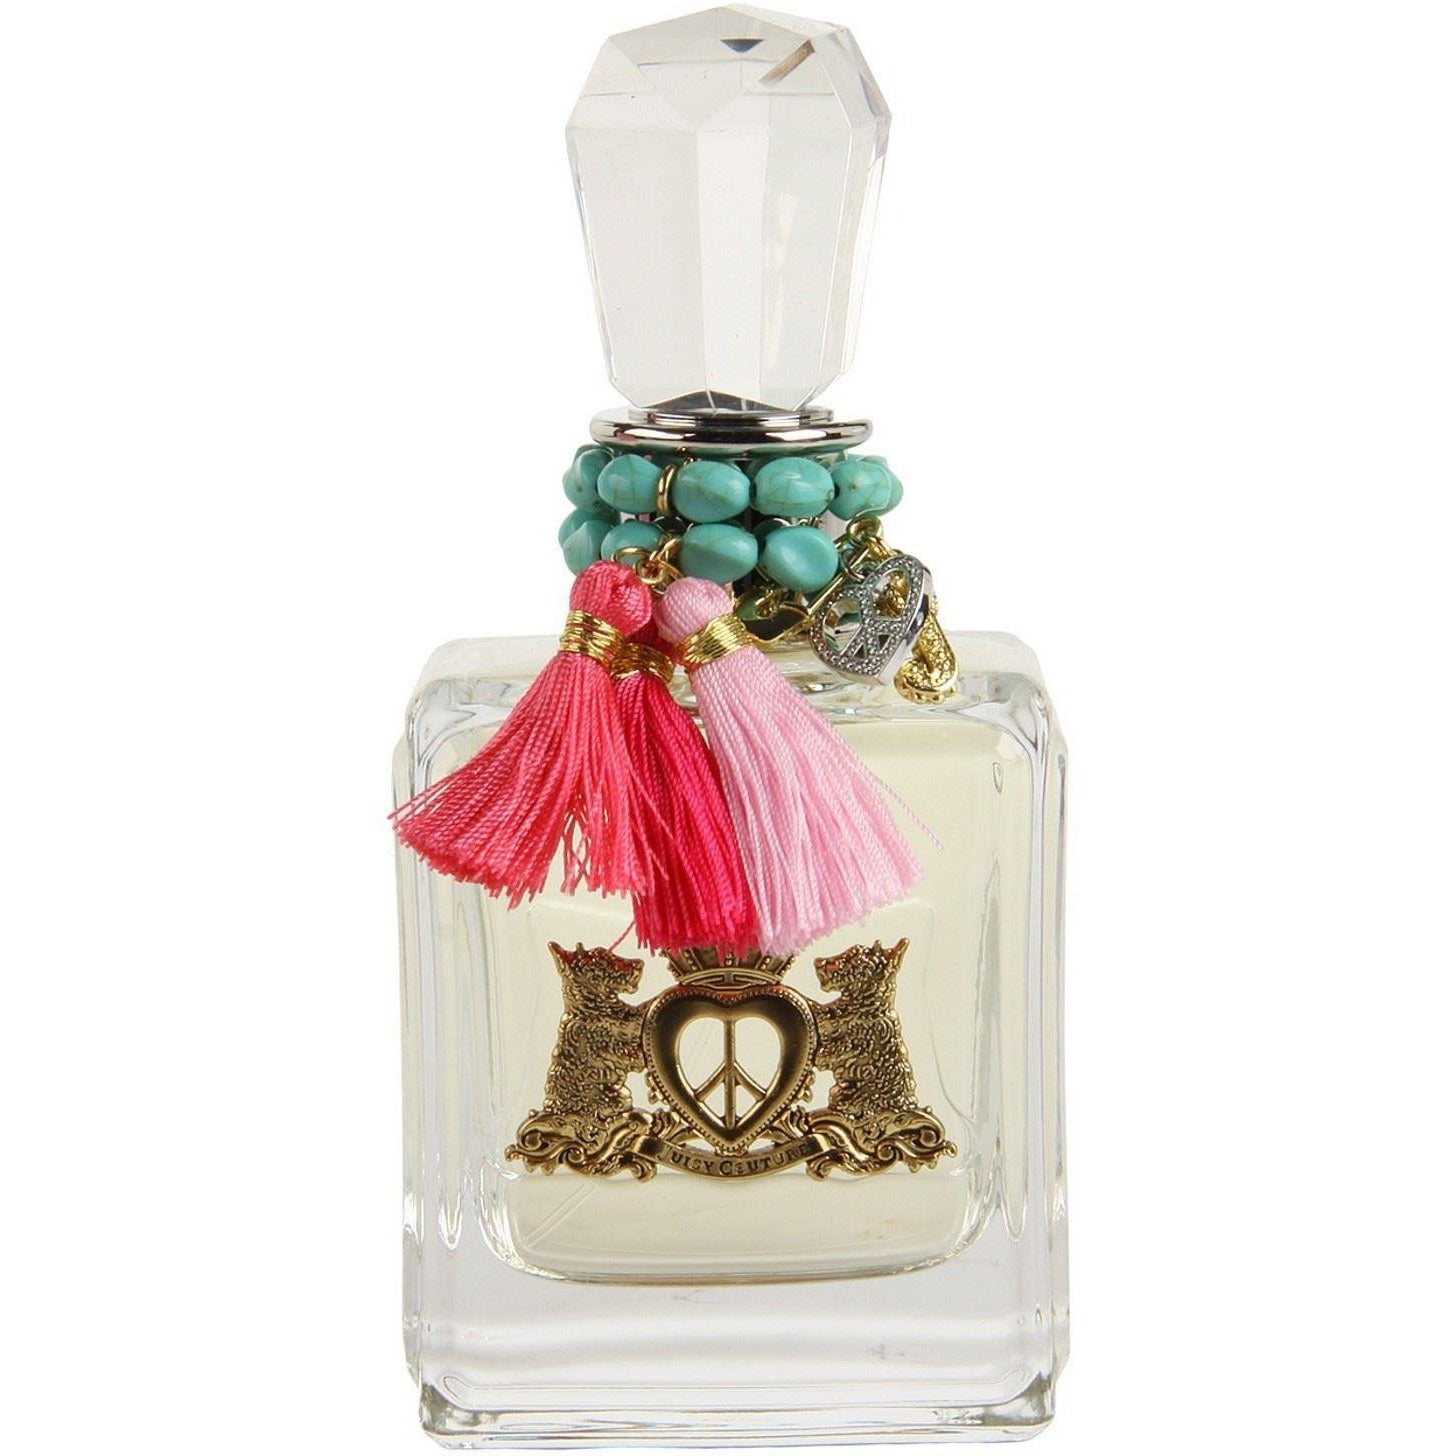 peace-love-juicy-couture-perfume-women-3-4-oz-edp-3-3-spray-new-with-charms